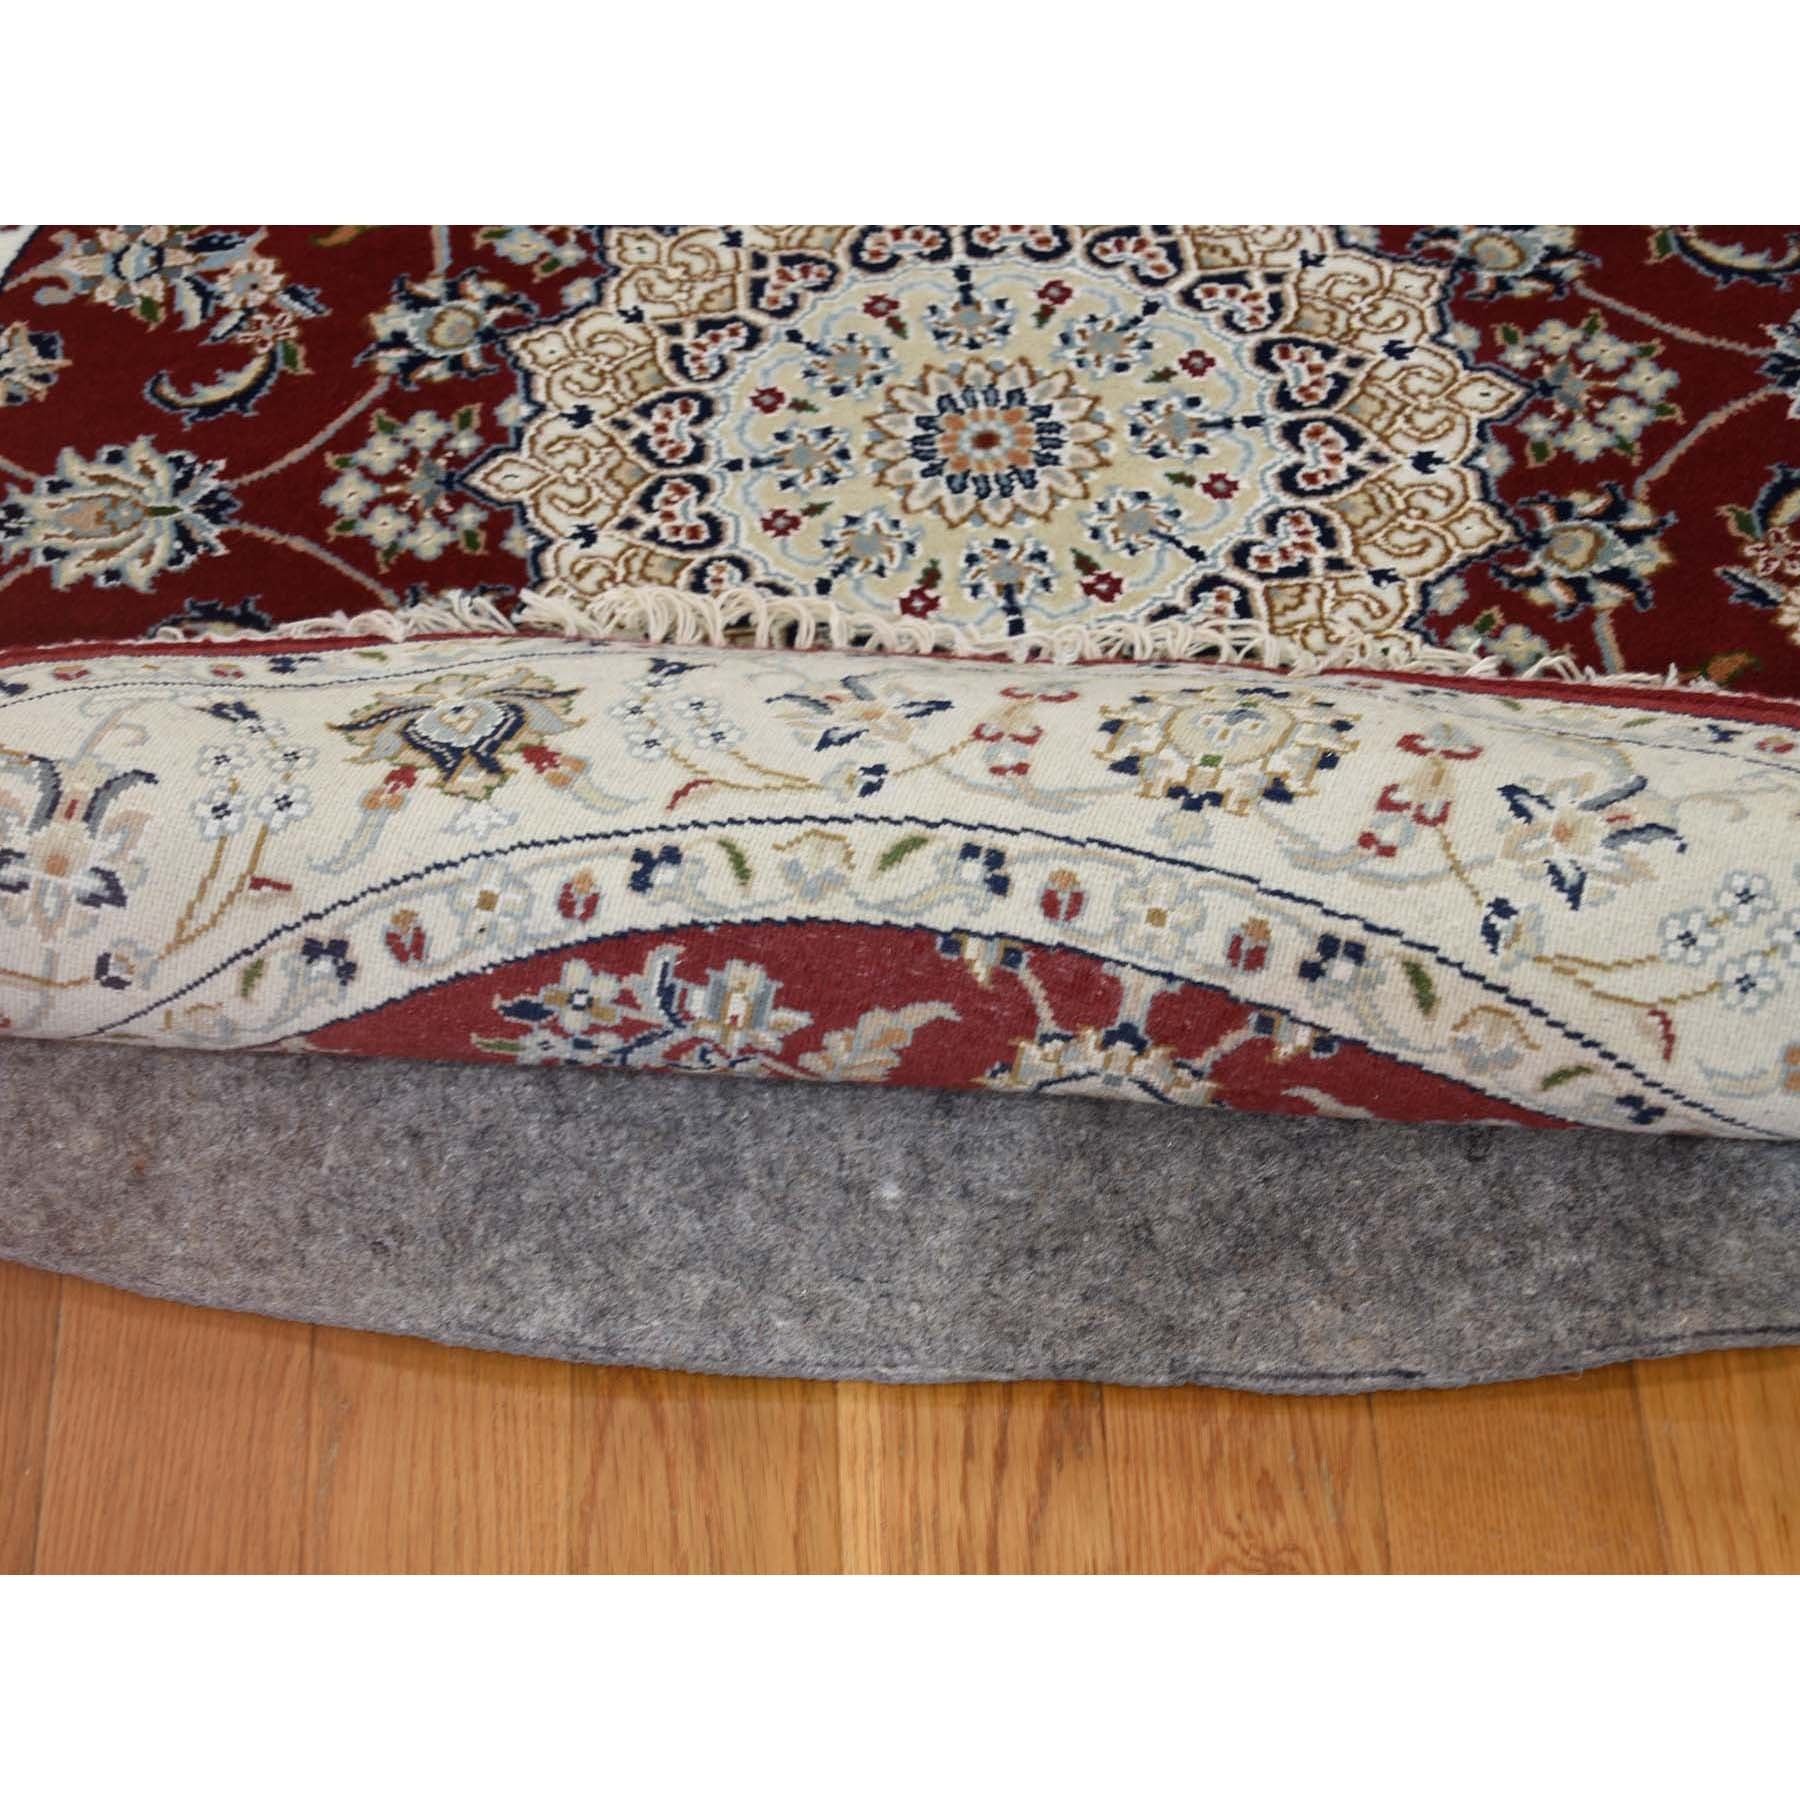 3'x3' Wool And Silk 250 KPSI Red Nain Hand-Knotted Oriental Round Rug